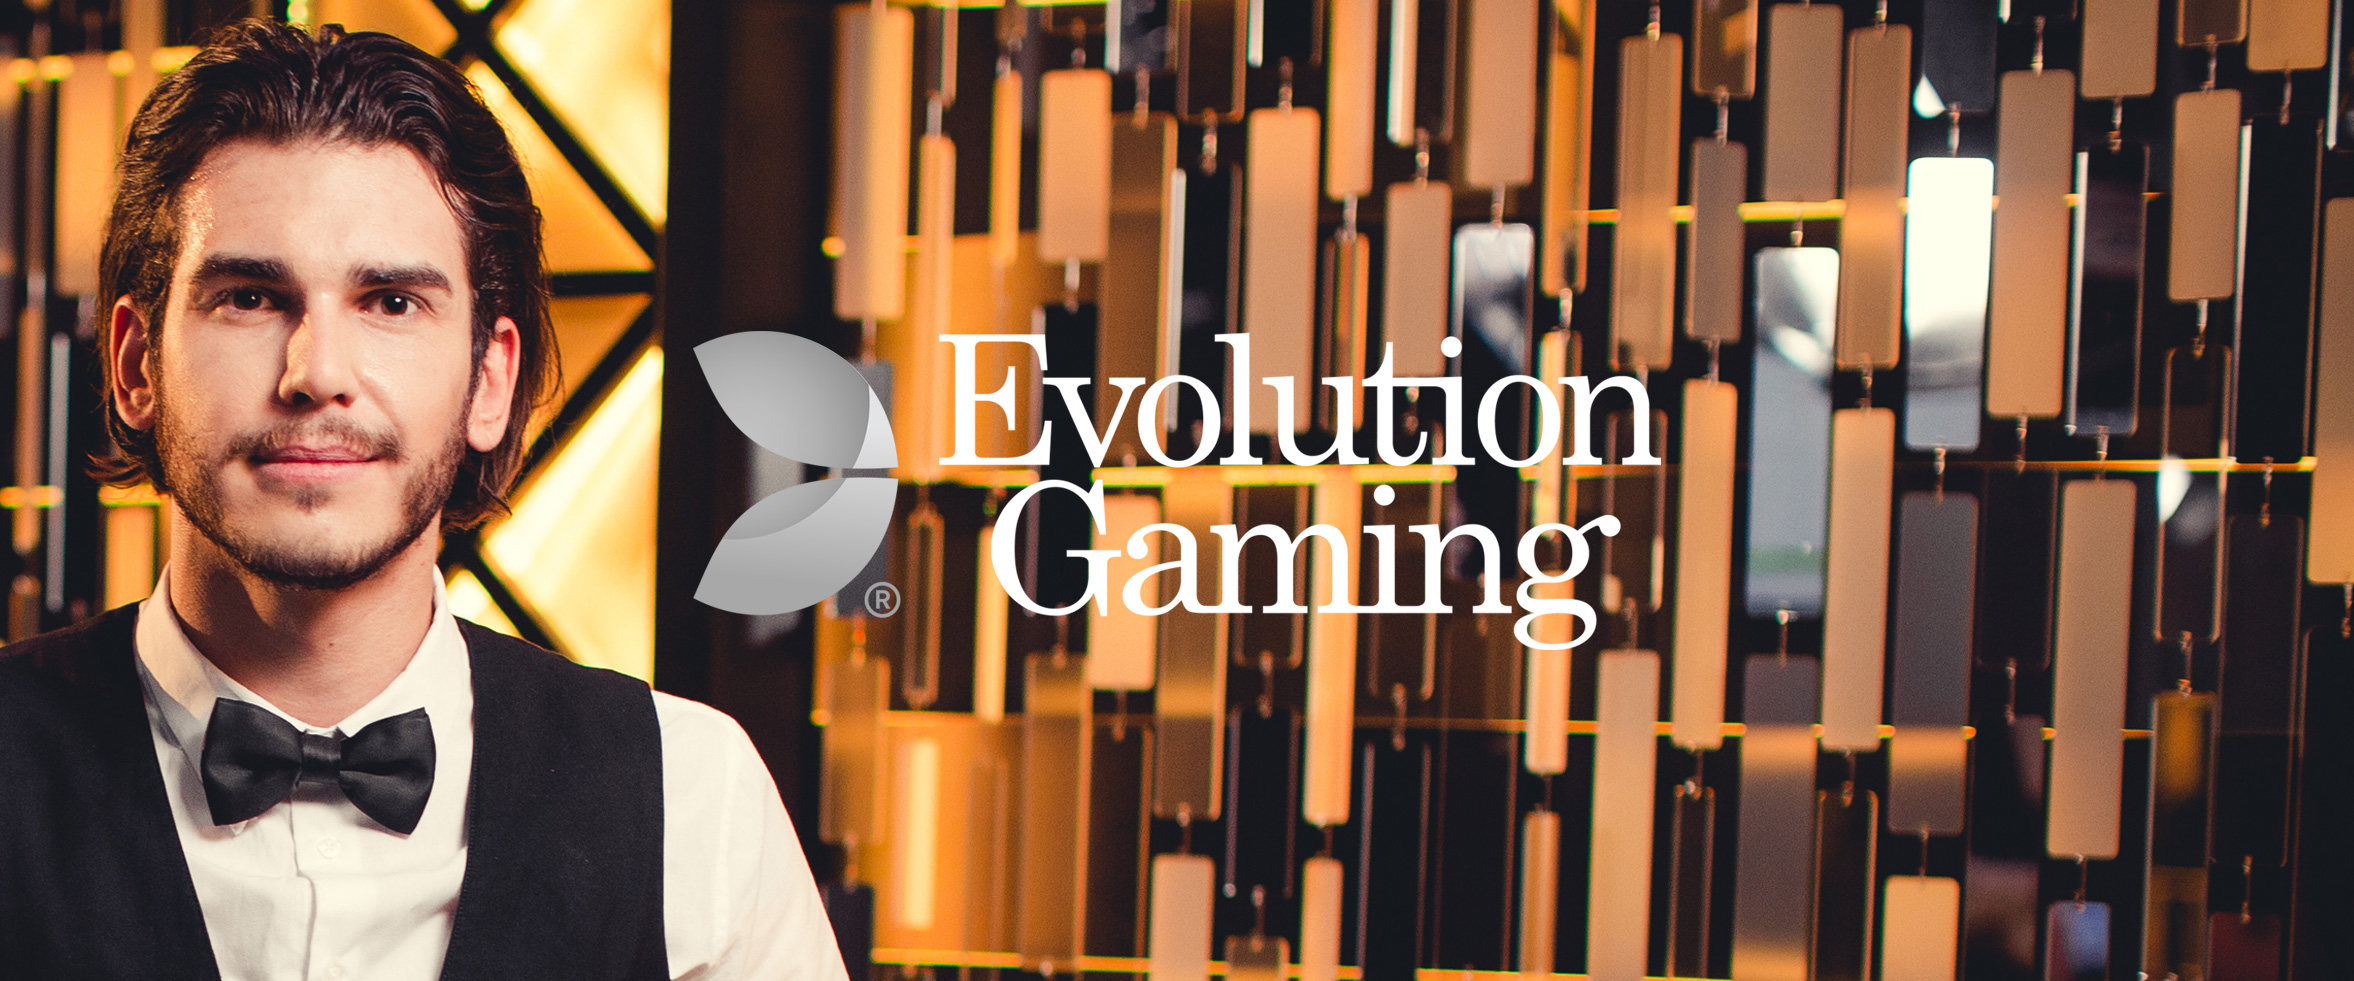 Wildz welcomes Evolution Gaming to the party